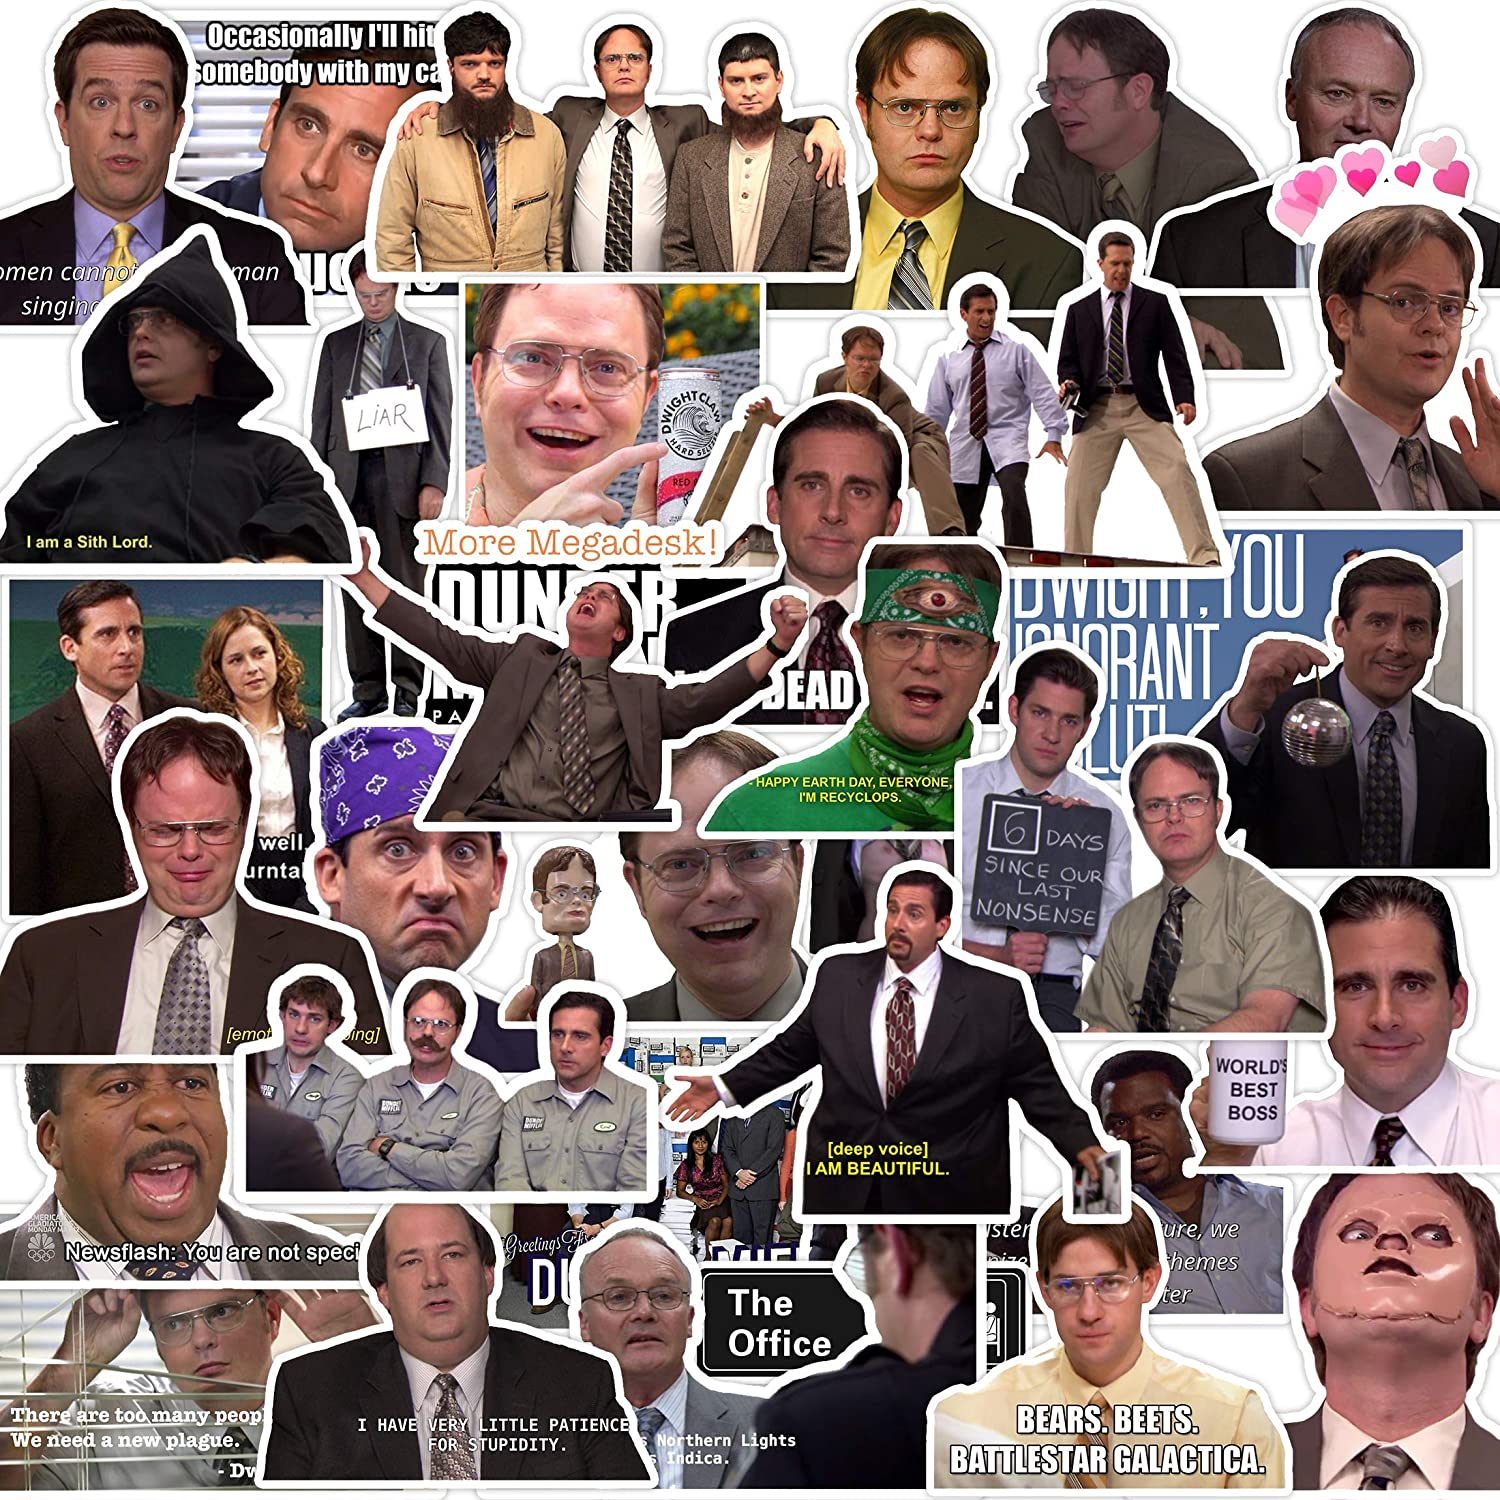 The Office Sticker 50 Pack - Popular TV Show The Office Vinyl Sticker for Bumper Laptop Hydro Flask Water Bottles Phone Case, Funny Quote for Micheal Scott Dwight Schrute, Office Merchandise for Fans